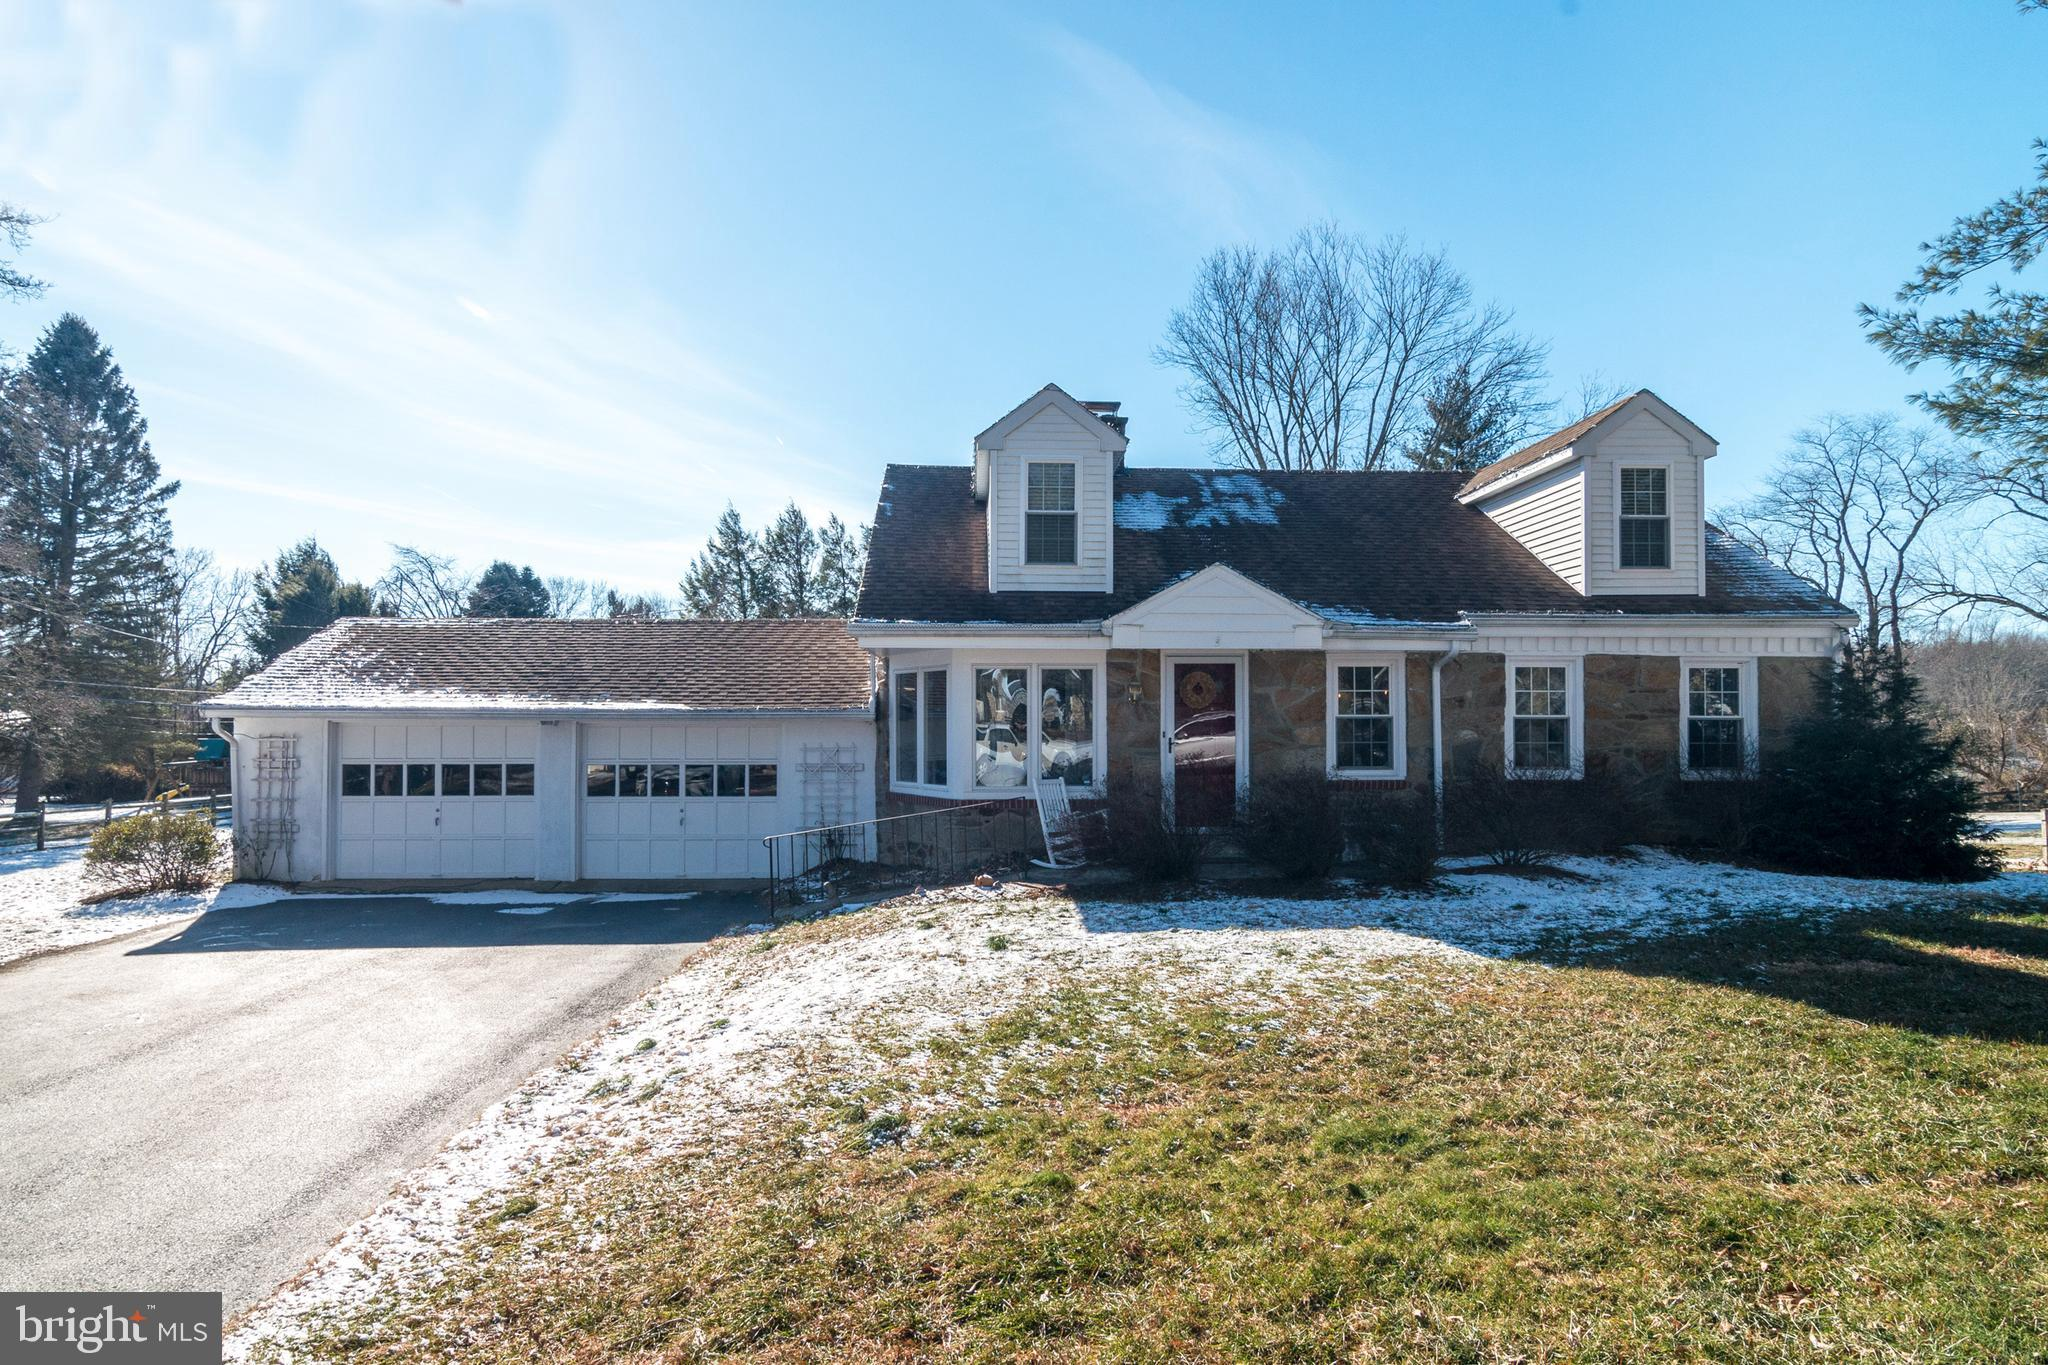 904 Gated Lane West Chester Pa 19380